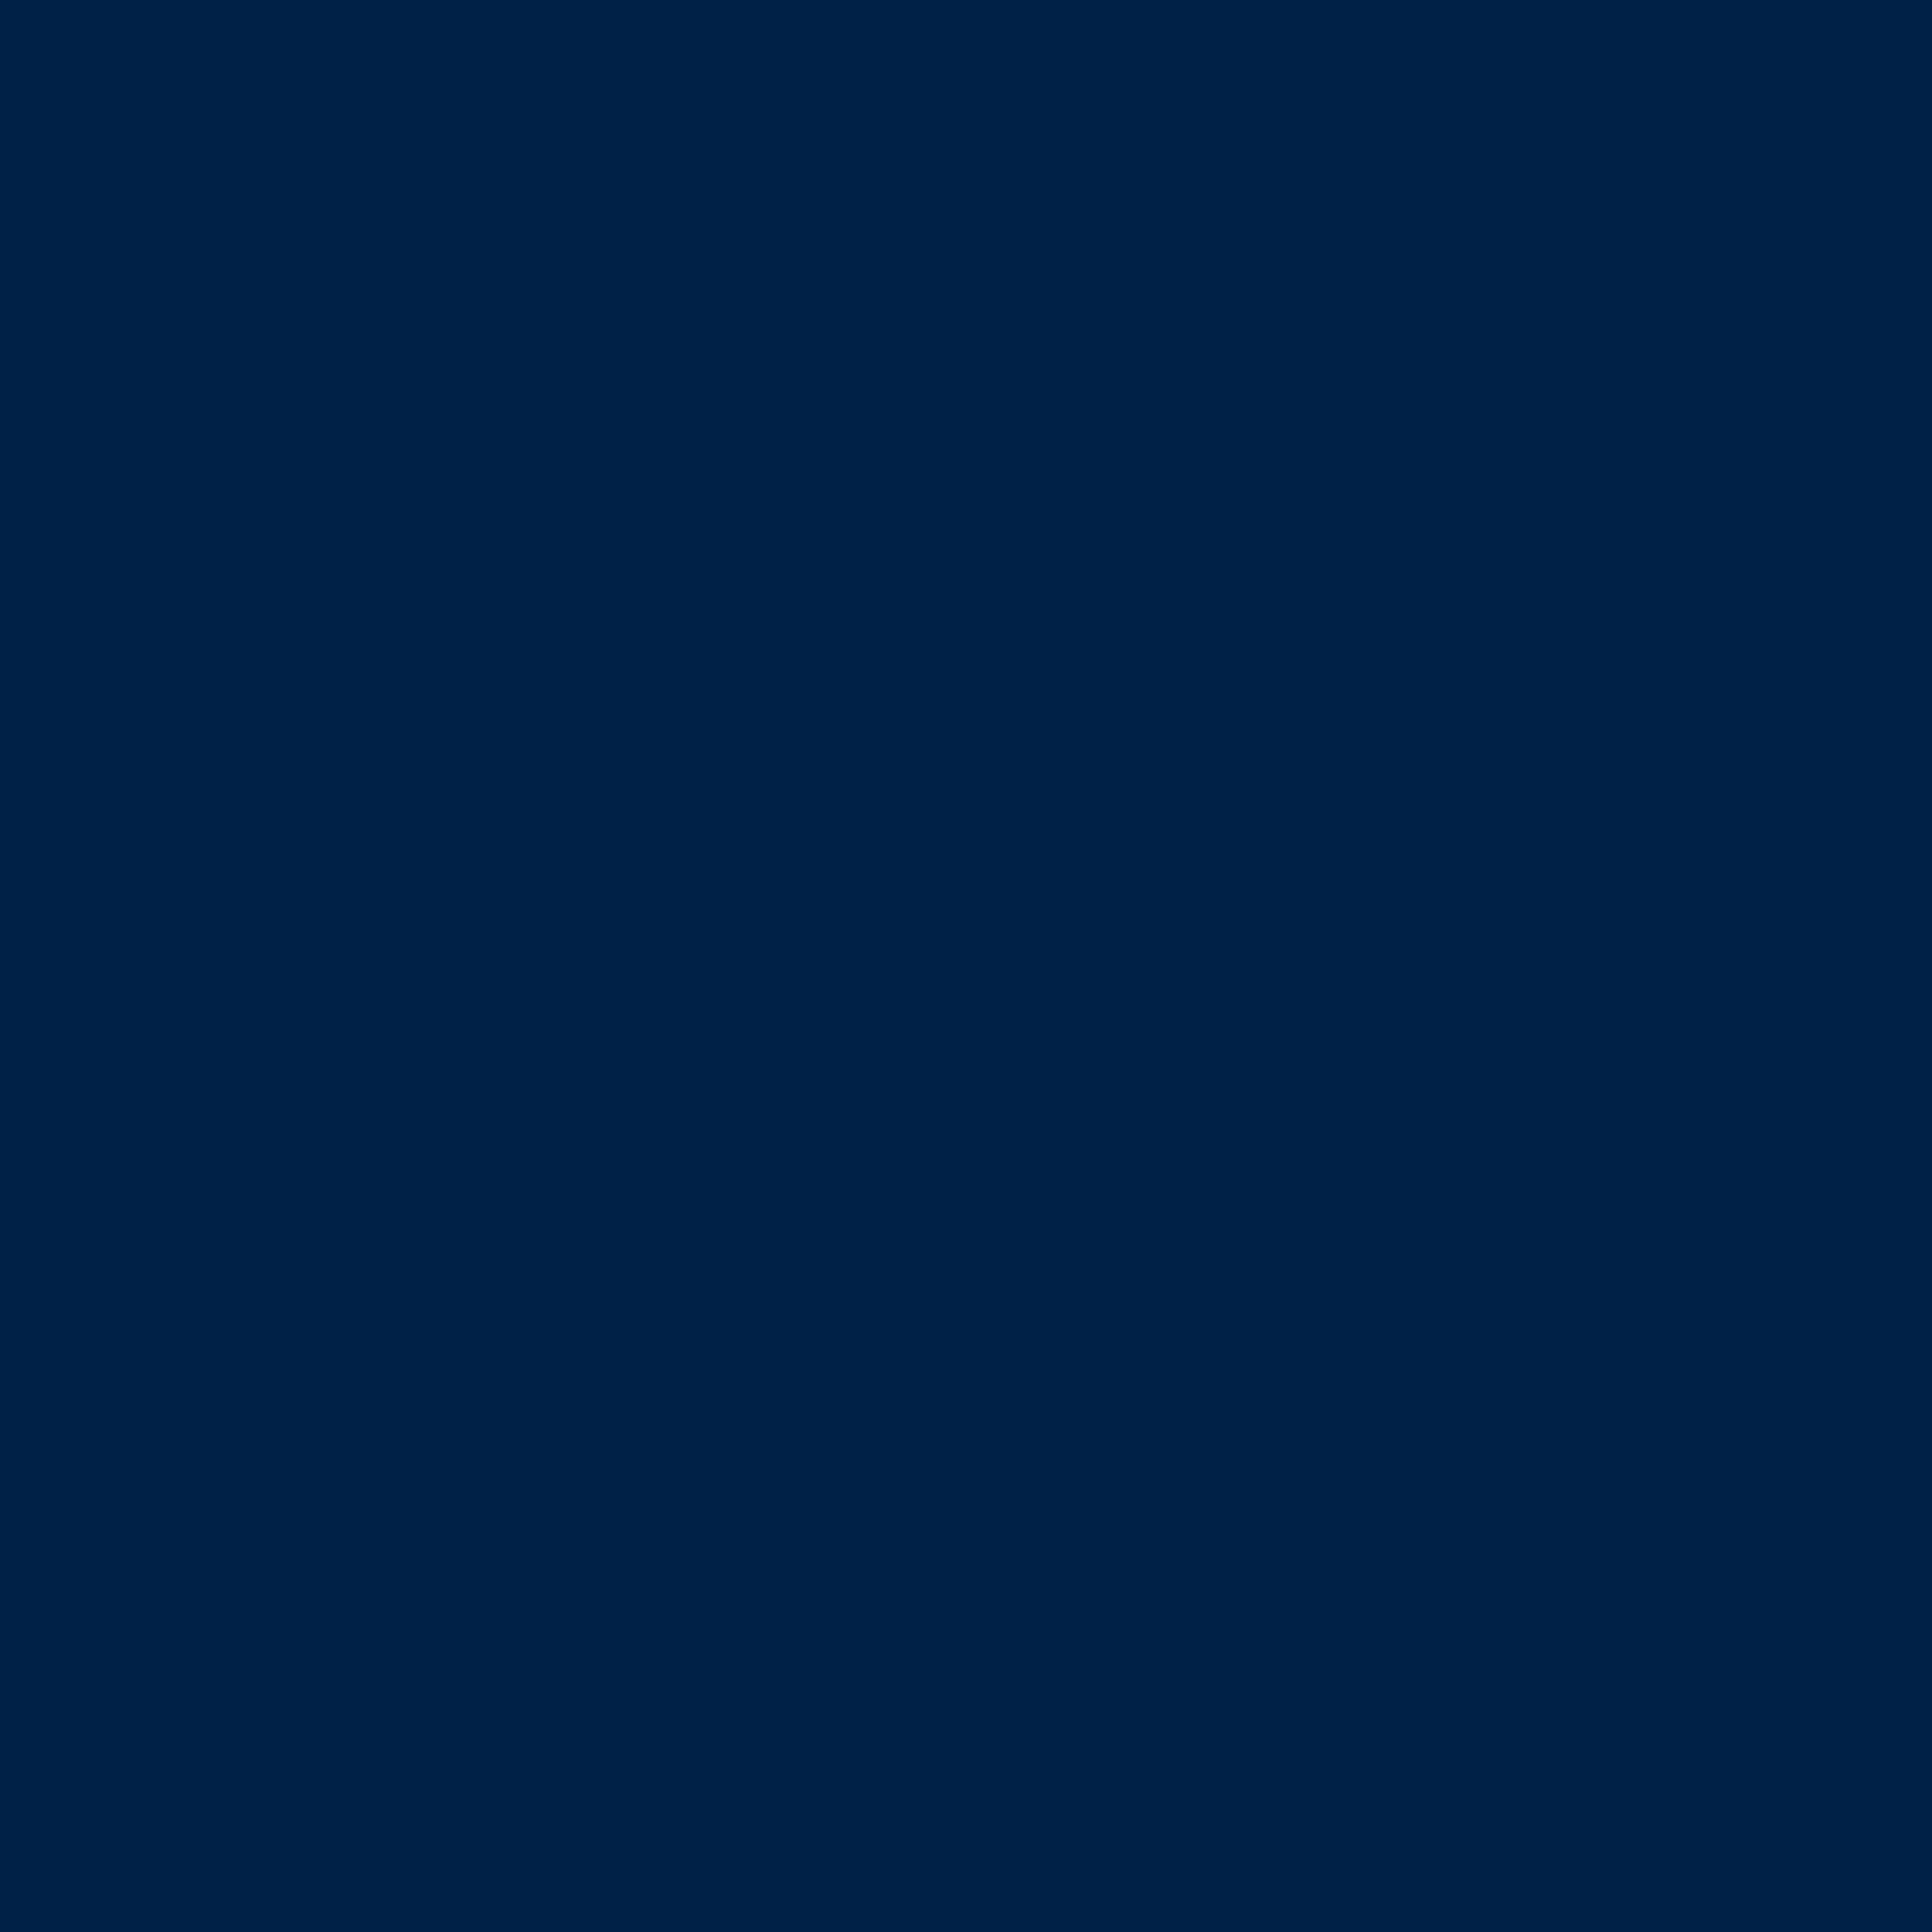 2732x2732 Oxford Blue Solid Color Background